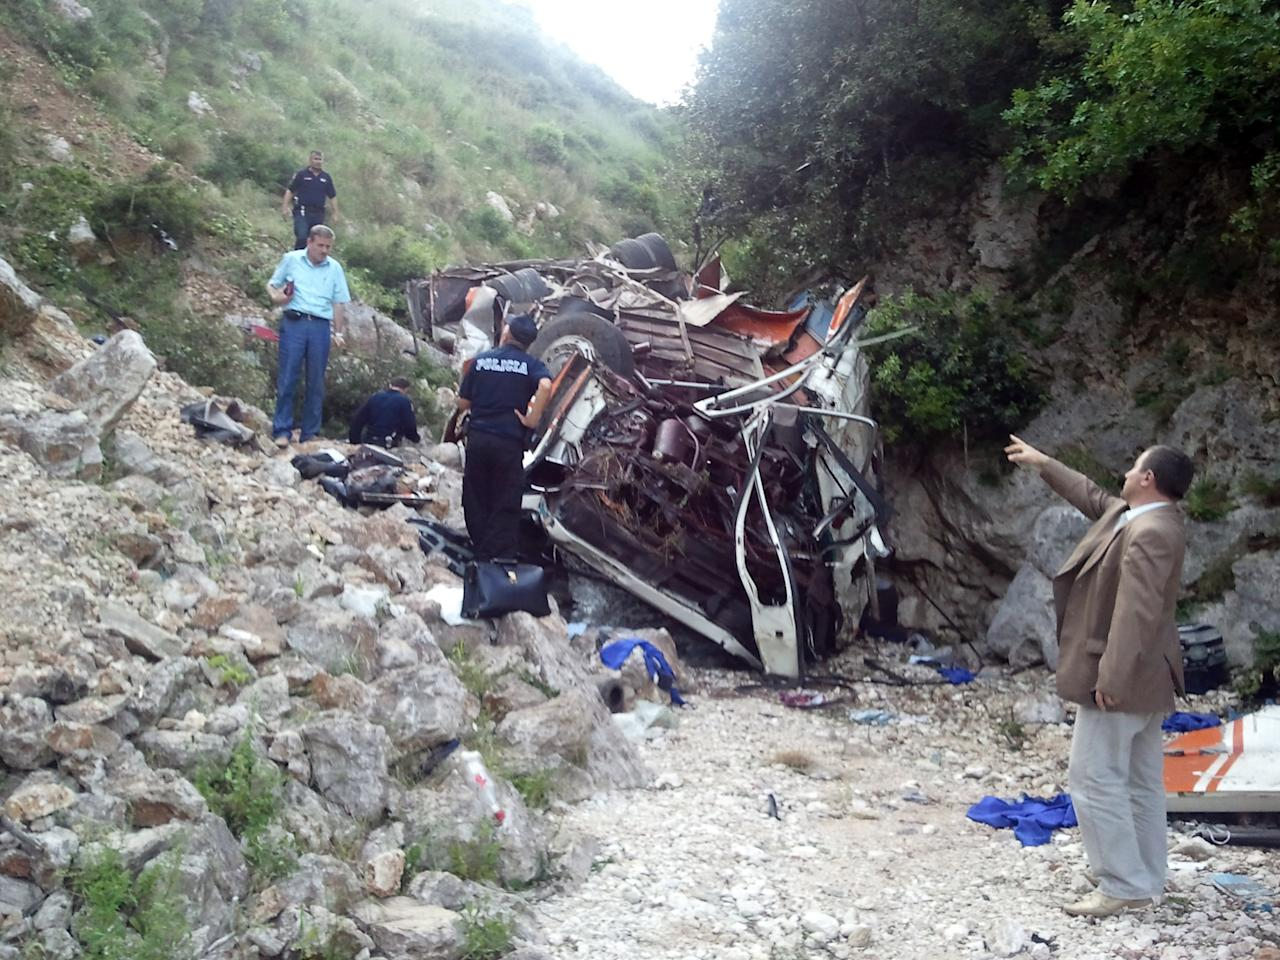 Rescue personnel attend the scene of a bus accident as the bus lies at the bottom of a cliff near Himare southern Albania on Monday, May 21, 2012. The accident killed a number of people and injured tens of others authorities said. Local prefect Edmond Velcani said the bus driver was among the people killed. The bus had been heading from the city of Elbasan to the southern city of Saranda. Police spokeswoman Klejda Plangarica said the bus fell some 80 meters (yards) off the road in Qafa e Vishes near the town of Himare, 137 miles (220 kilometers) south of the capital, Tirana, on Monday afternoon. (AP Photo)